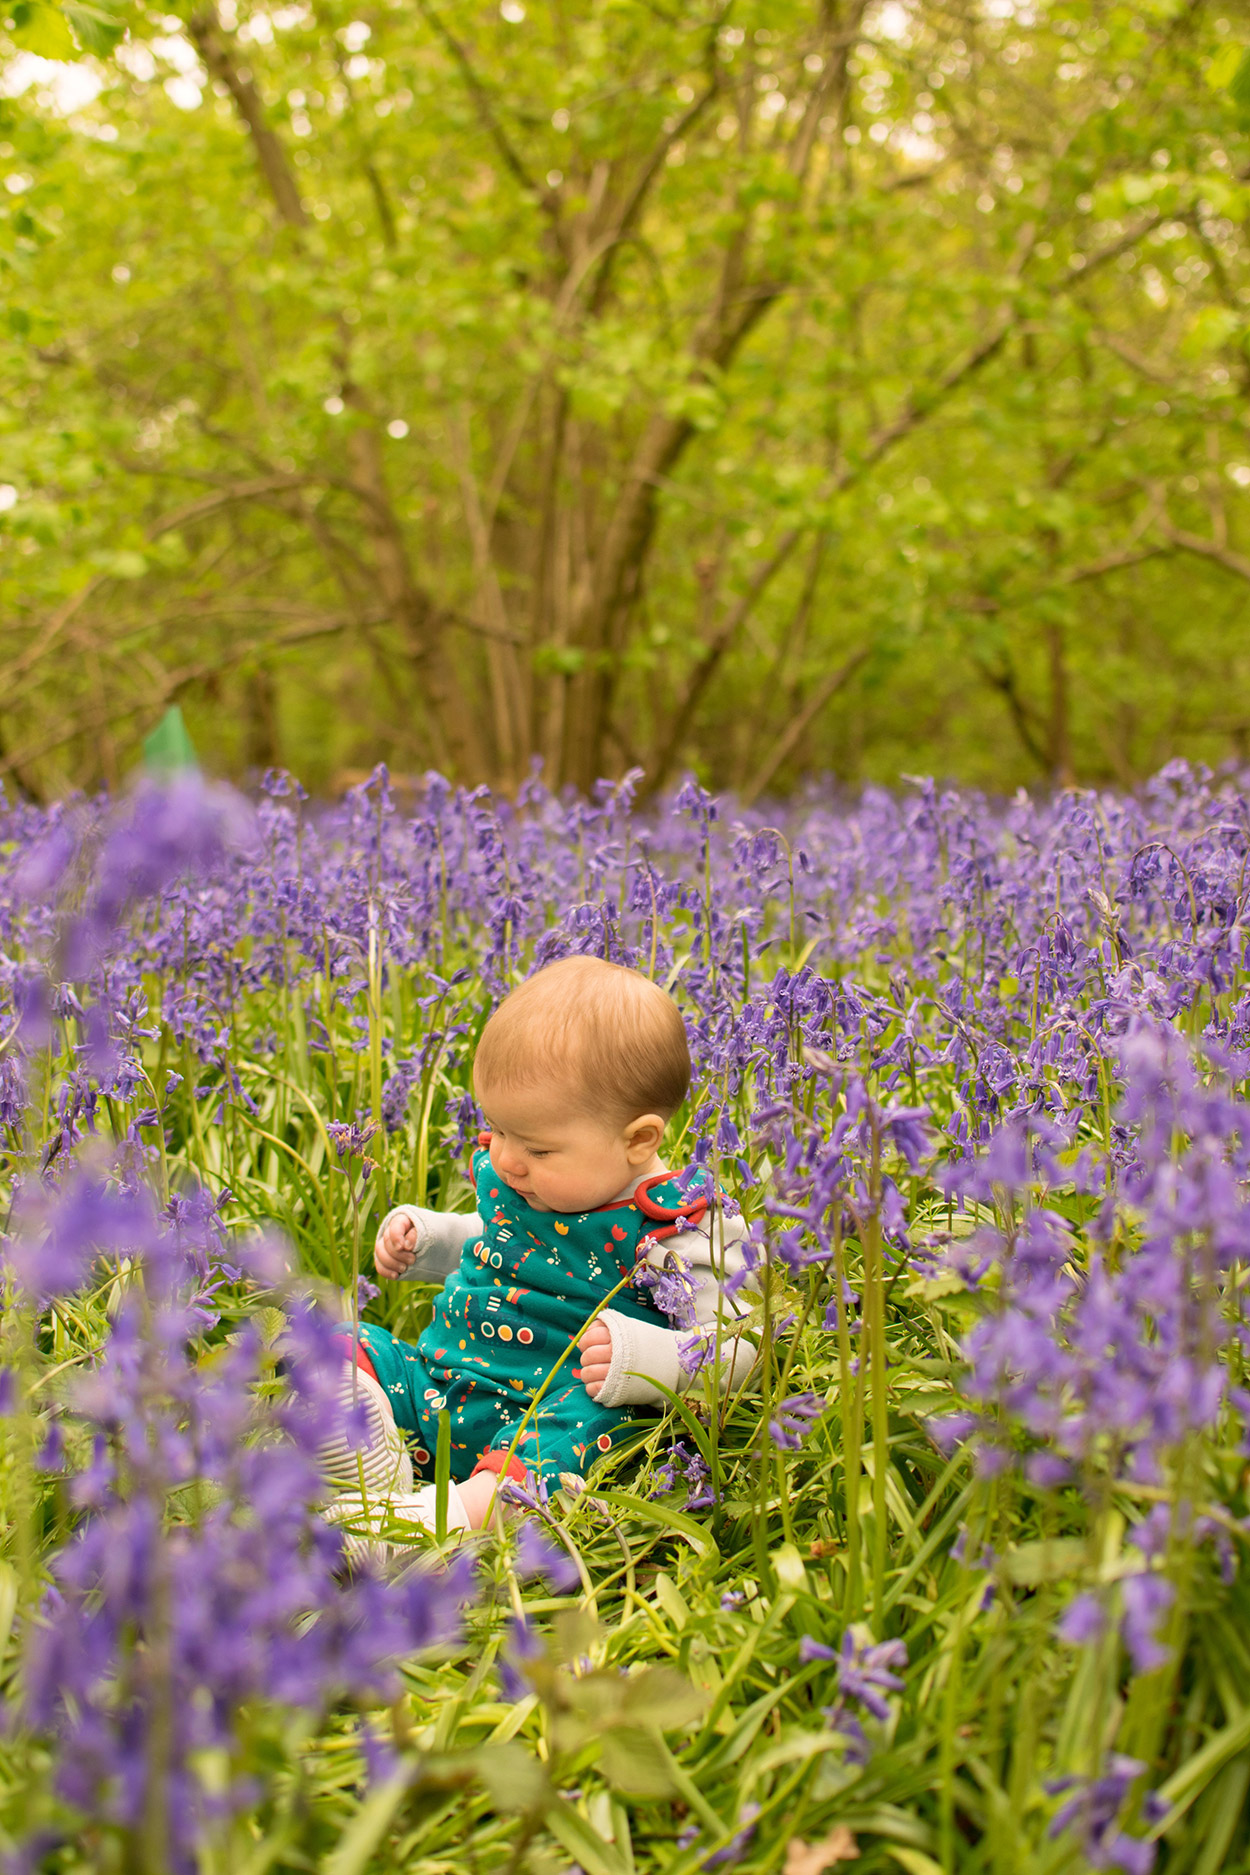 The Secret Bluebells. - Mother and her two boys playing amongst the beautiful bluebells in a secluded woodland wearing Joules hat, Little Green Radical submarine romper and Little Bird rainbow wellies playing